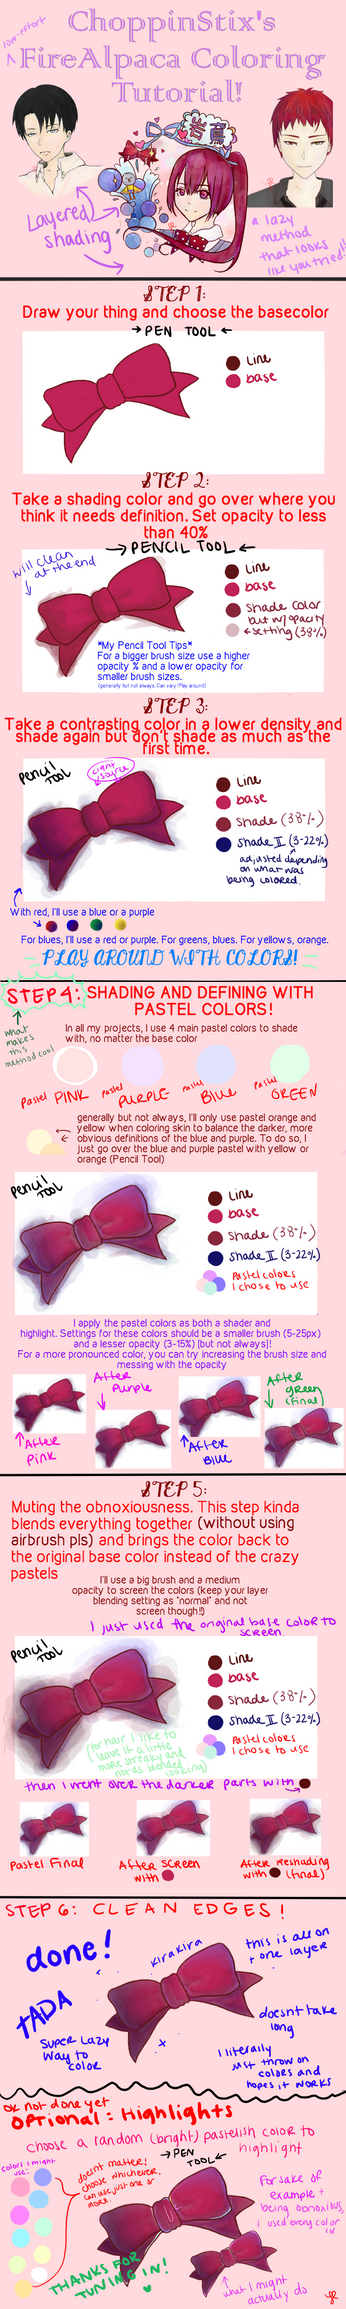 FireAlpaca: Layered Shading and Coloring Tutorial by ChoppinStix